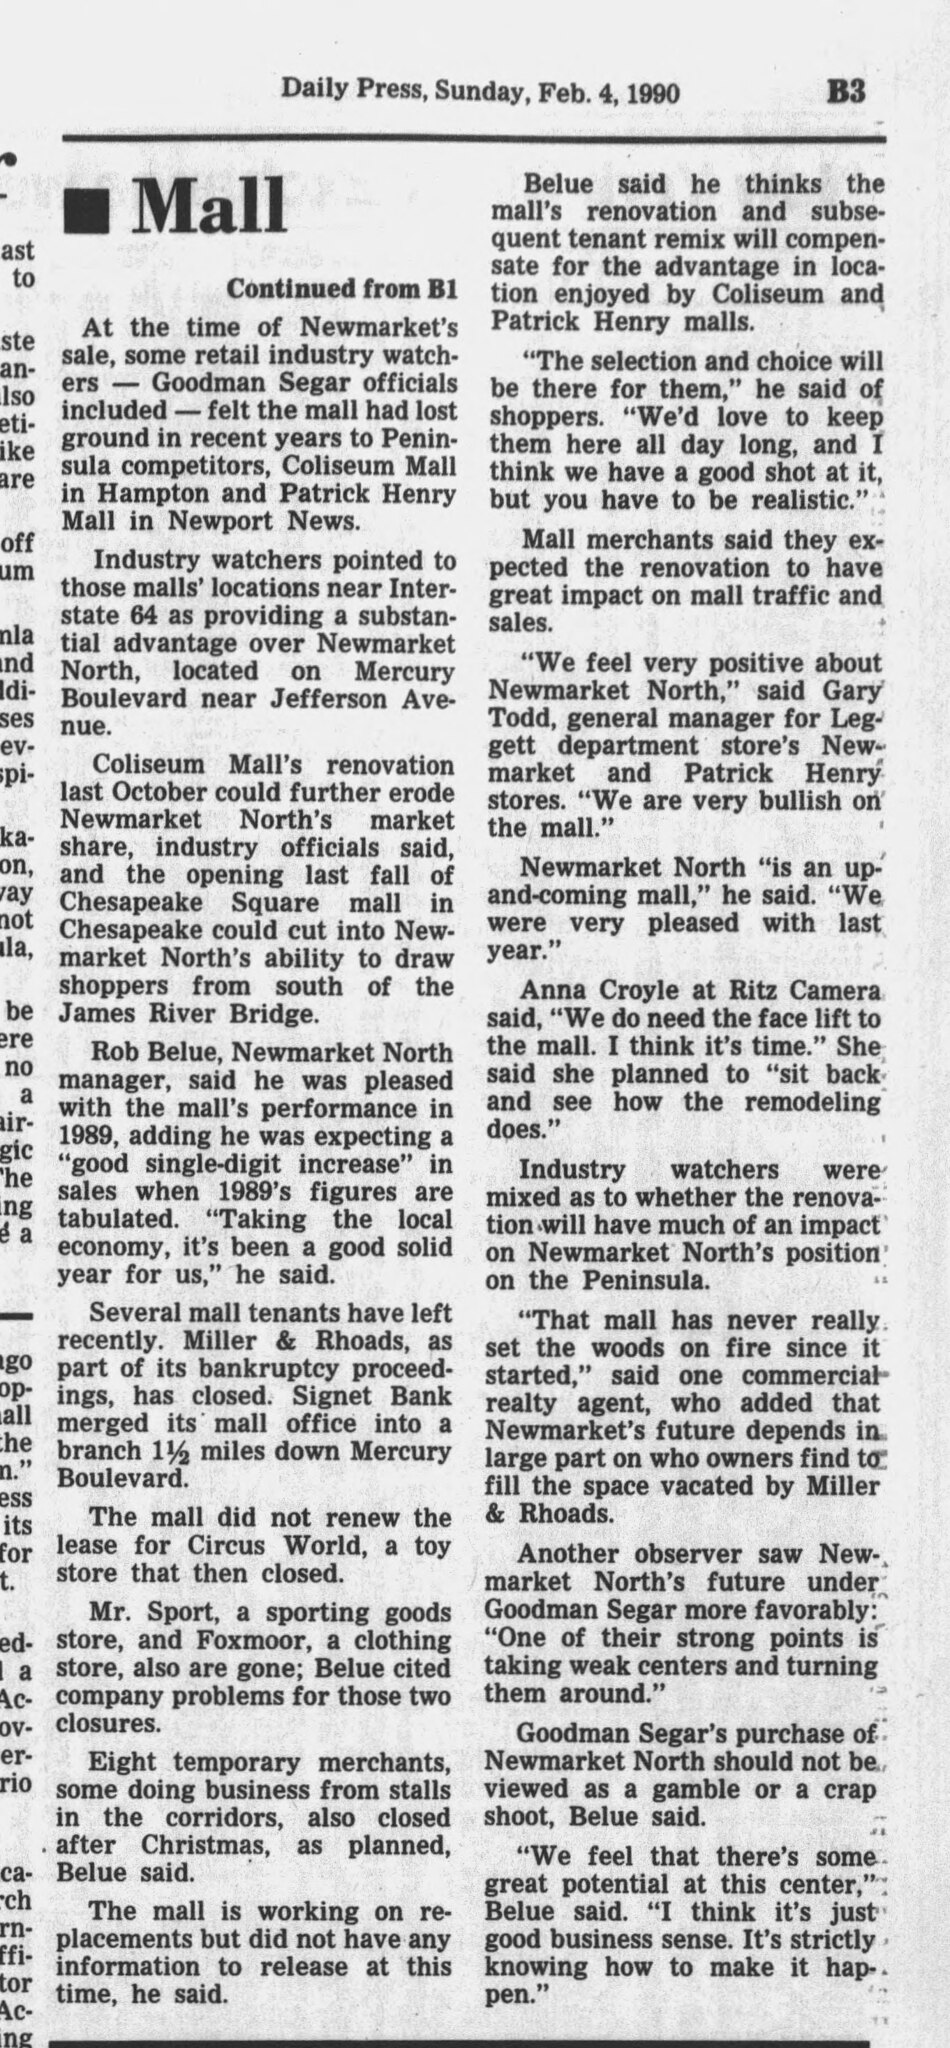 new look for newmarket (2/4/1990)